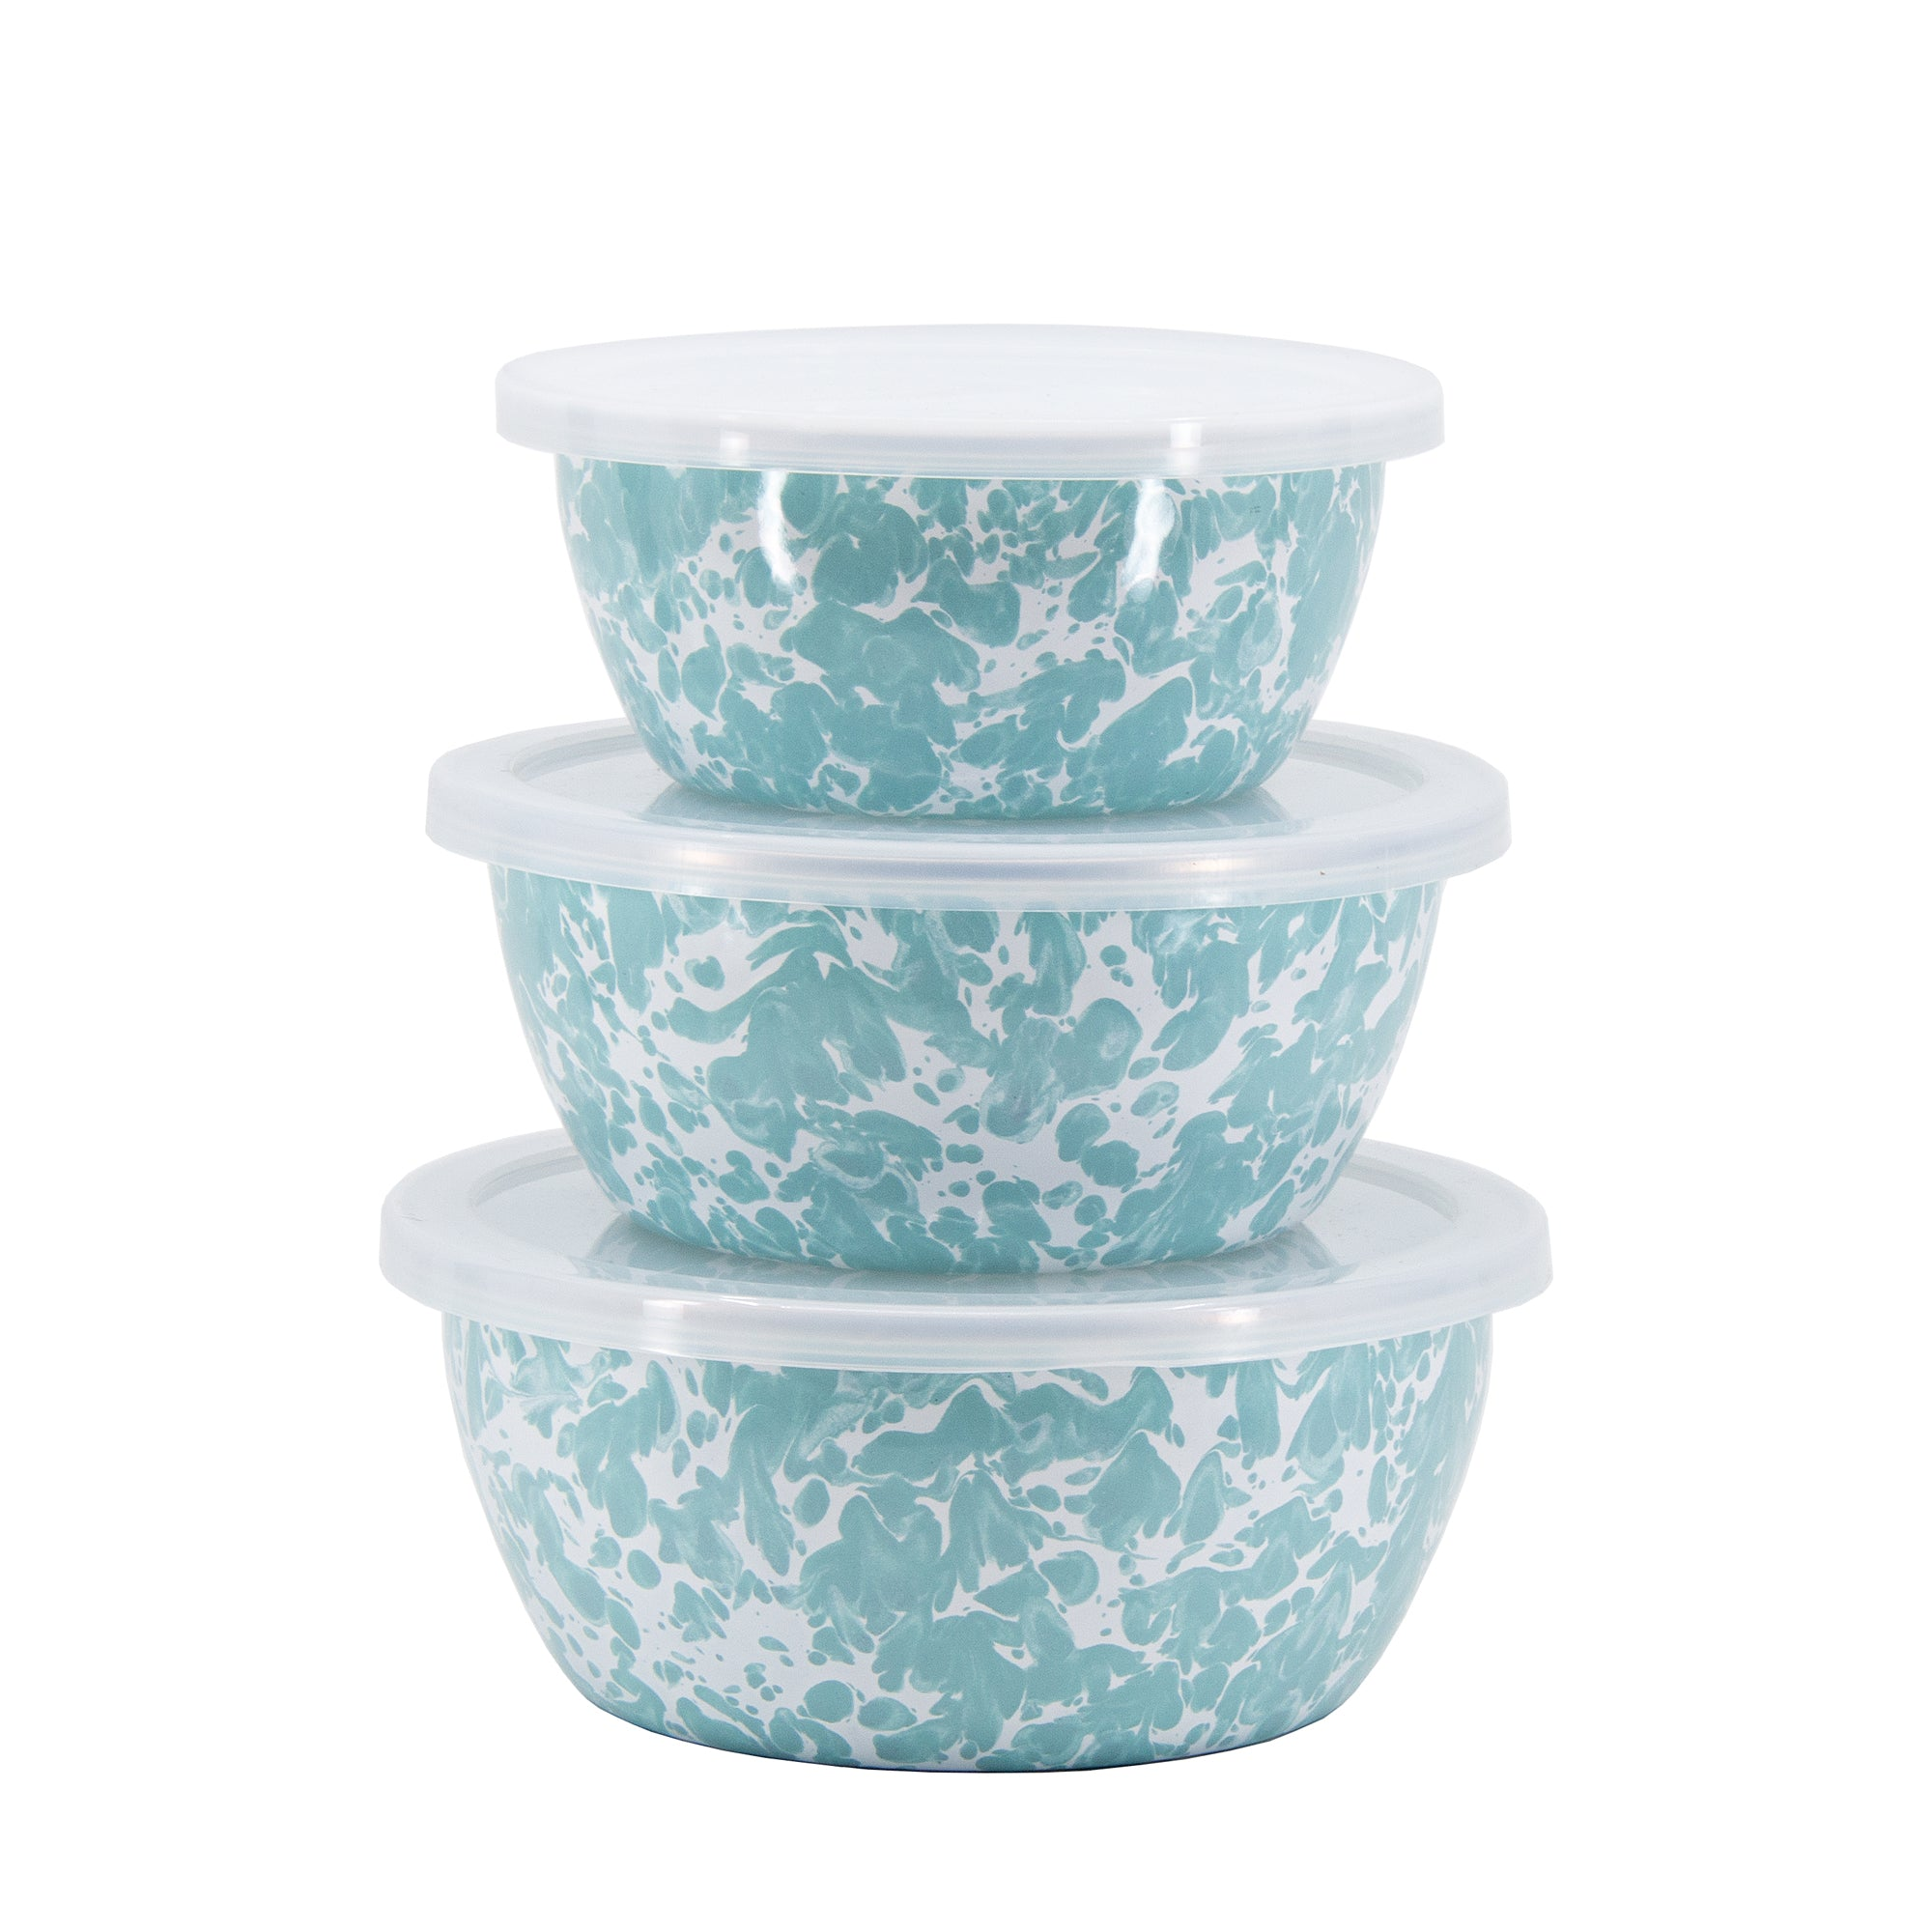 GL30 - Sea Glass Nesting Bowls Image 2